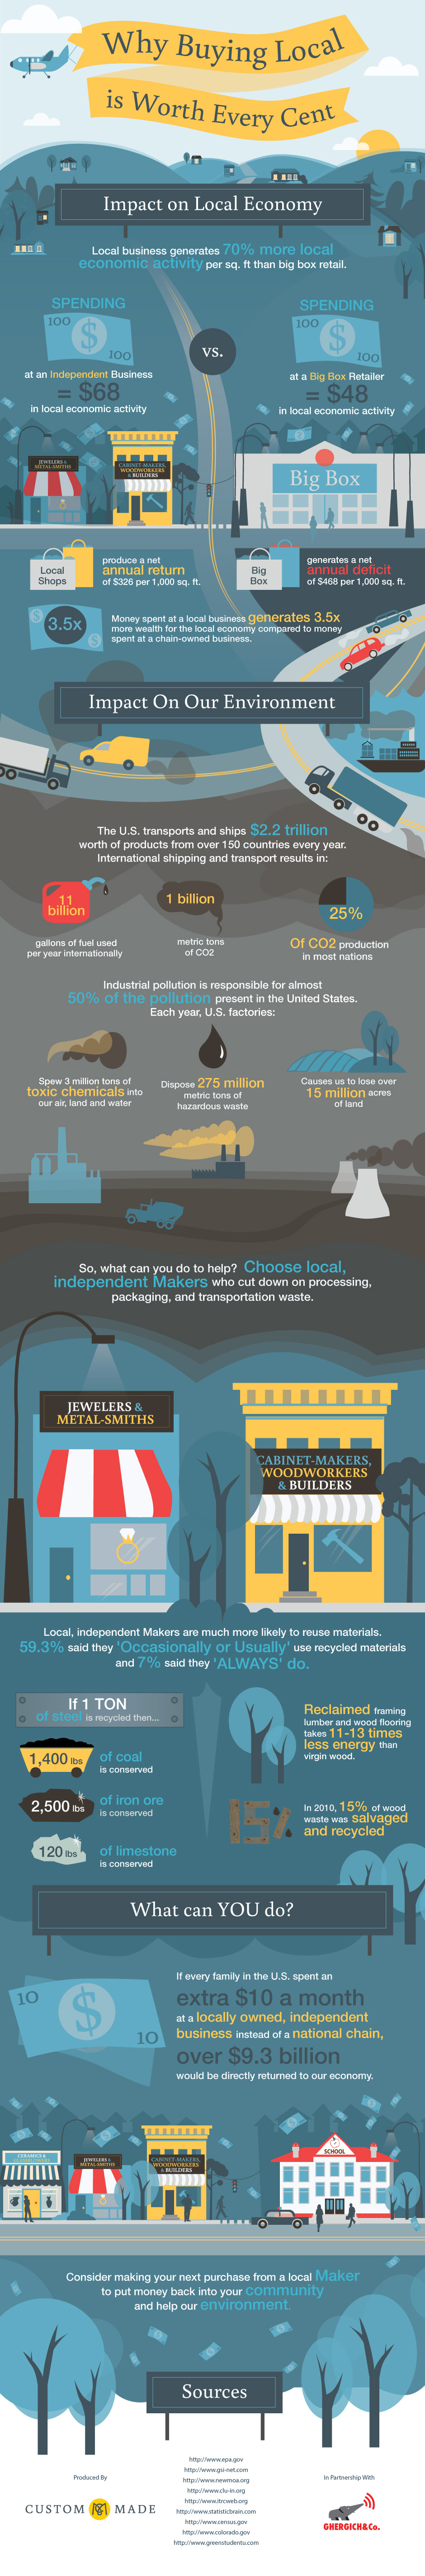 CustomMade Buying Local Infographic